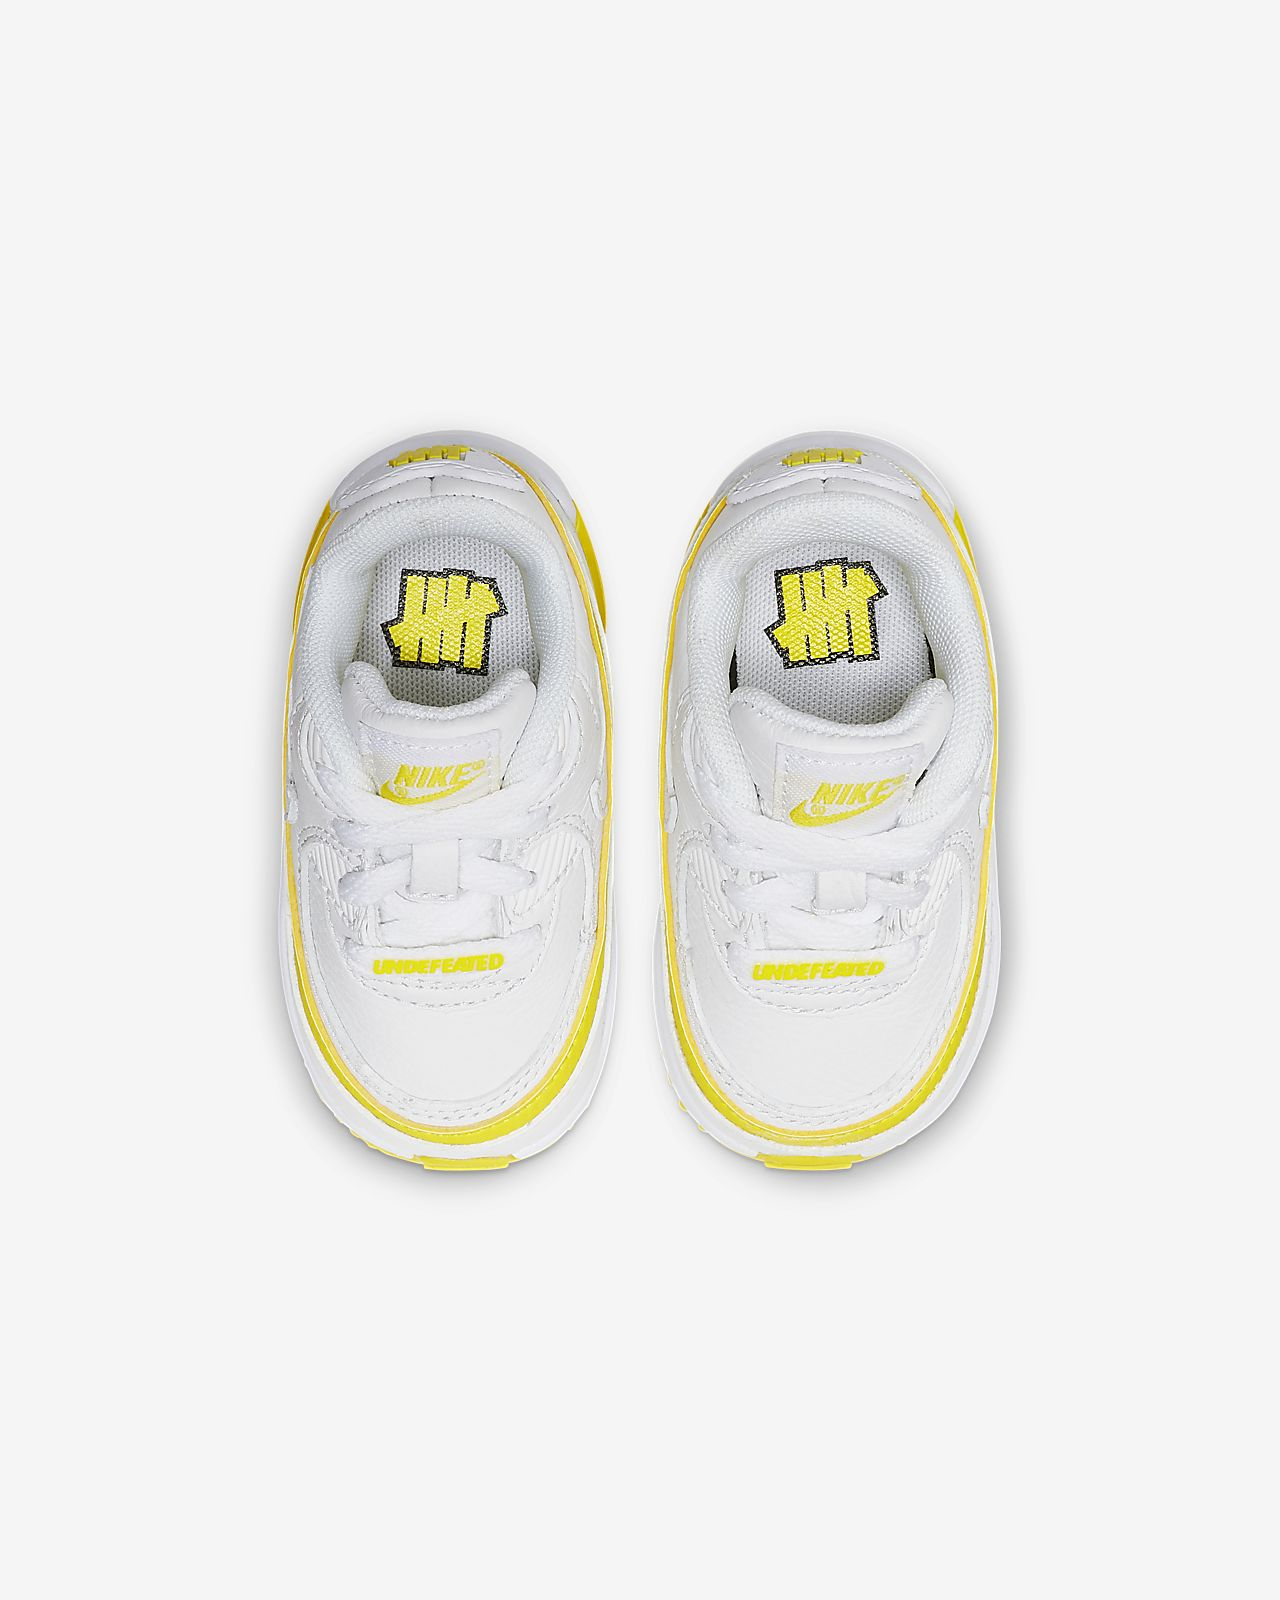 Nike x Undefeated Air Max 90 BabyToddler Shoe